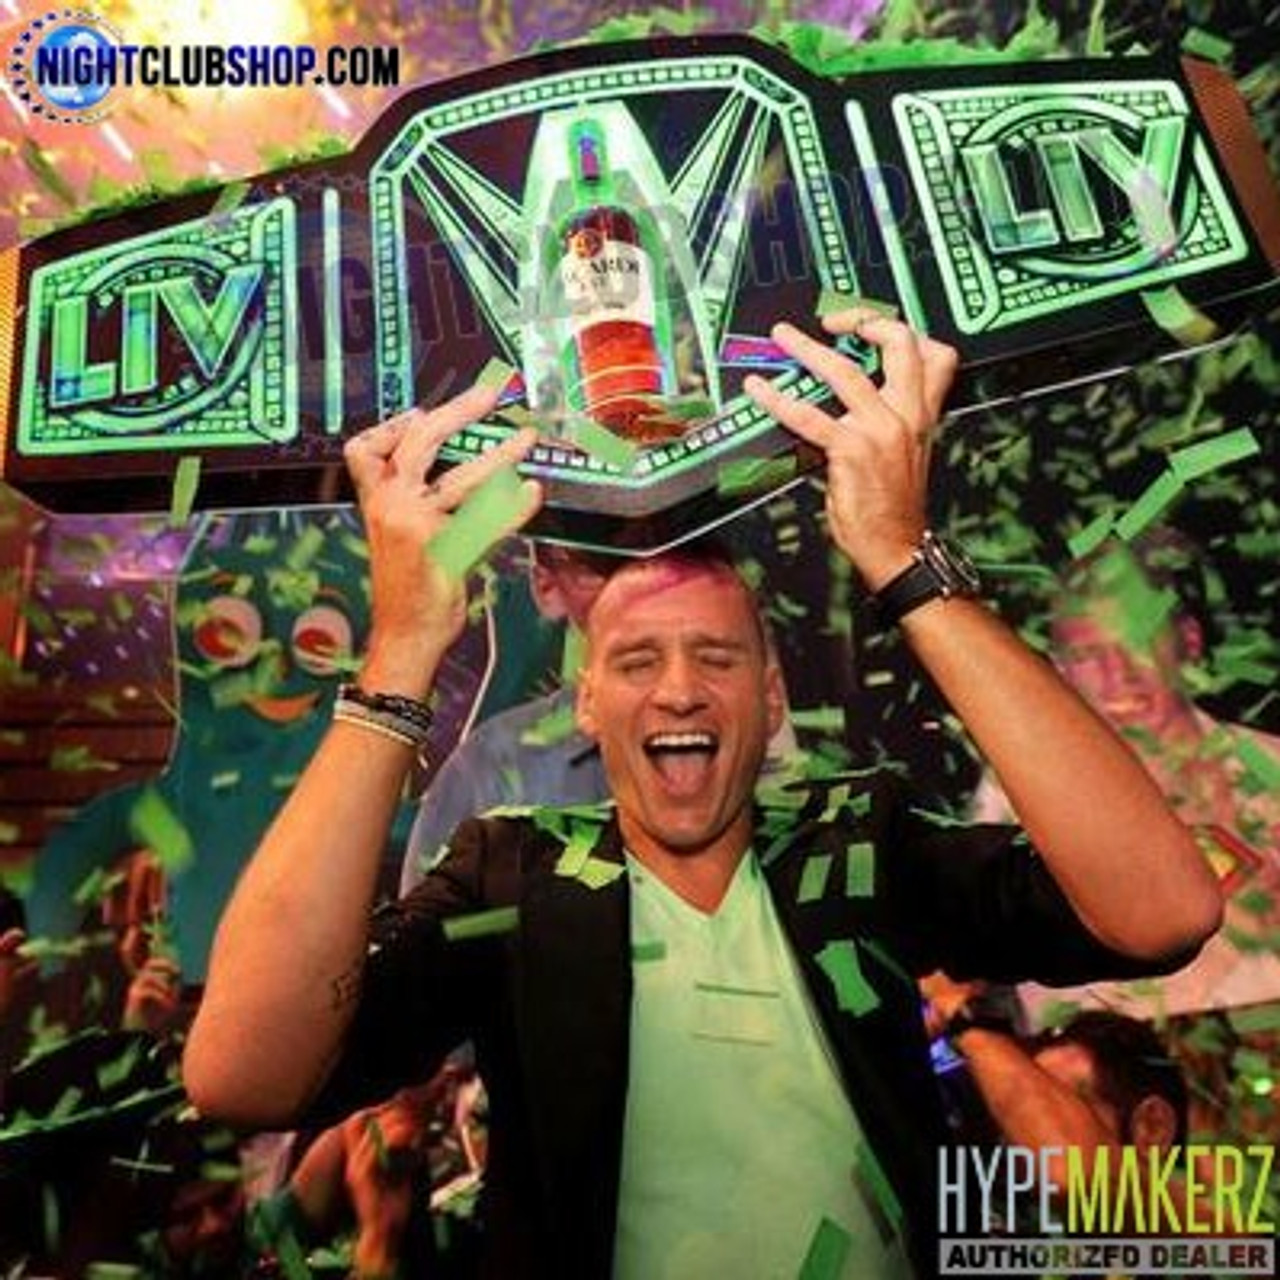 LED_RGB_RF_Remote_Controlled_Championship_Belt_Multi_Use_Winner_Celebration_LIV_Club_Nightlife_Club_Casino_Party